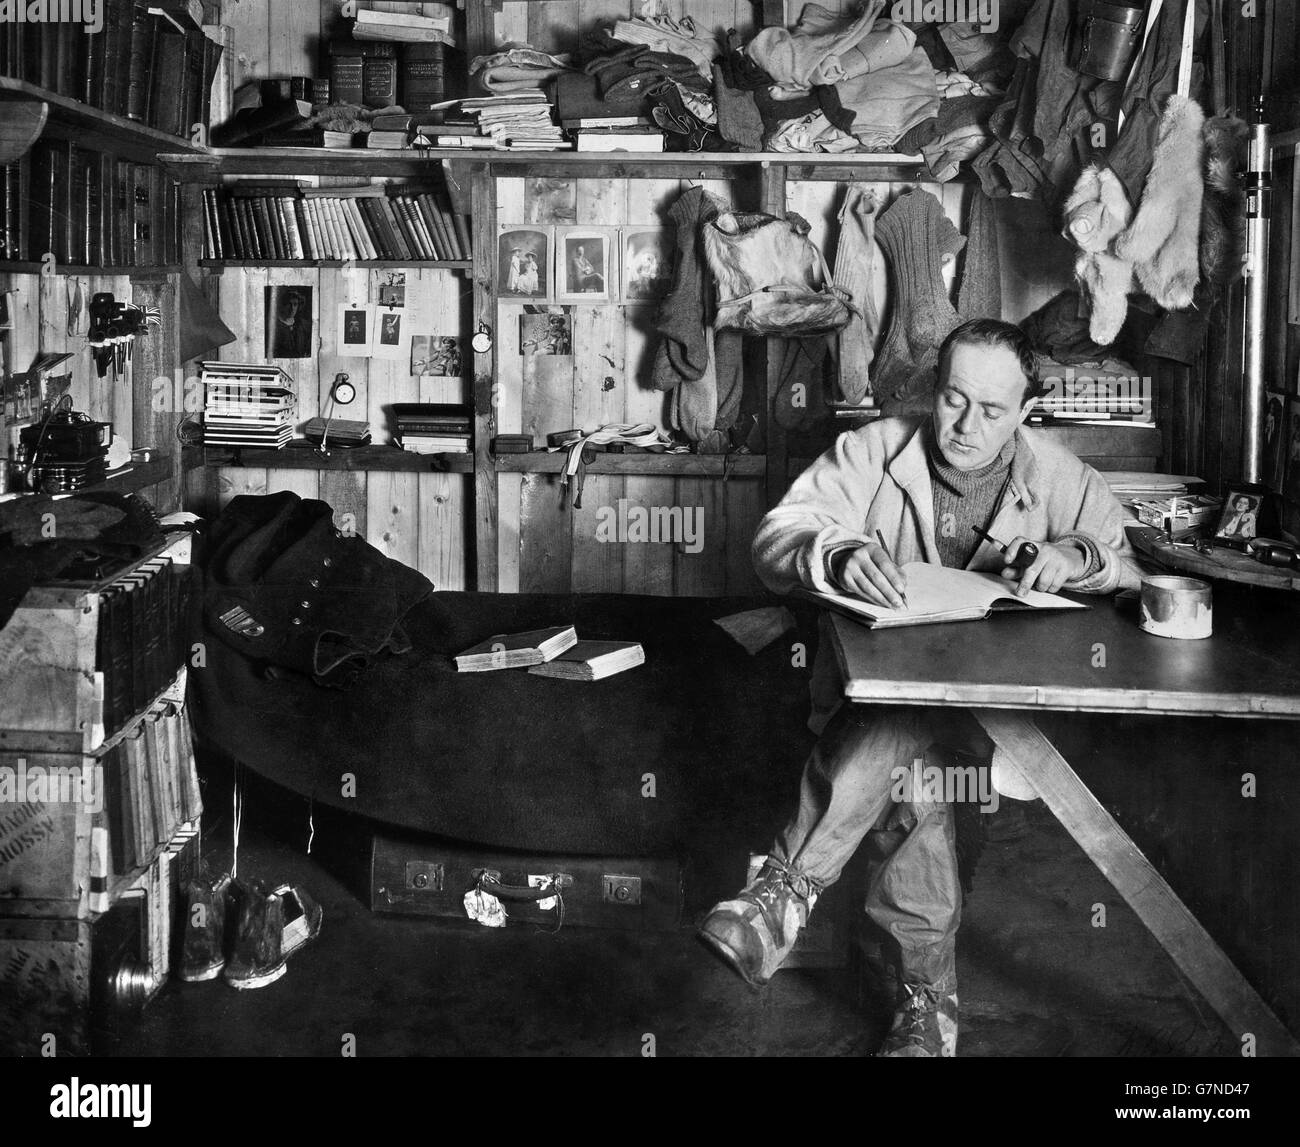 Captain Robert Falcon Scott writing in his diary in his hut at Cape Evans, Ross Island during the Terra Nova Expedition - Stock Image